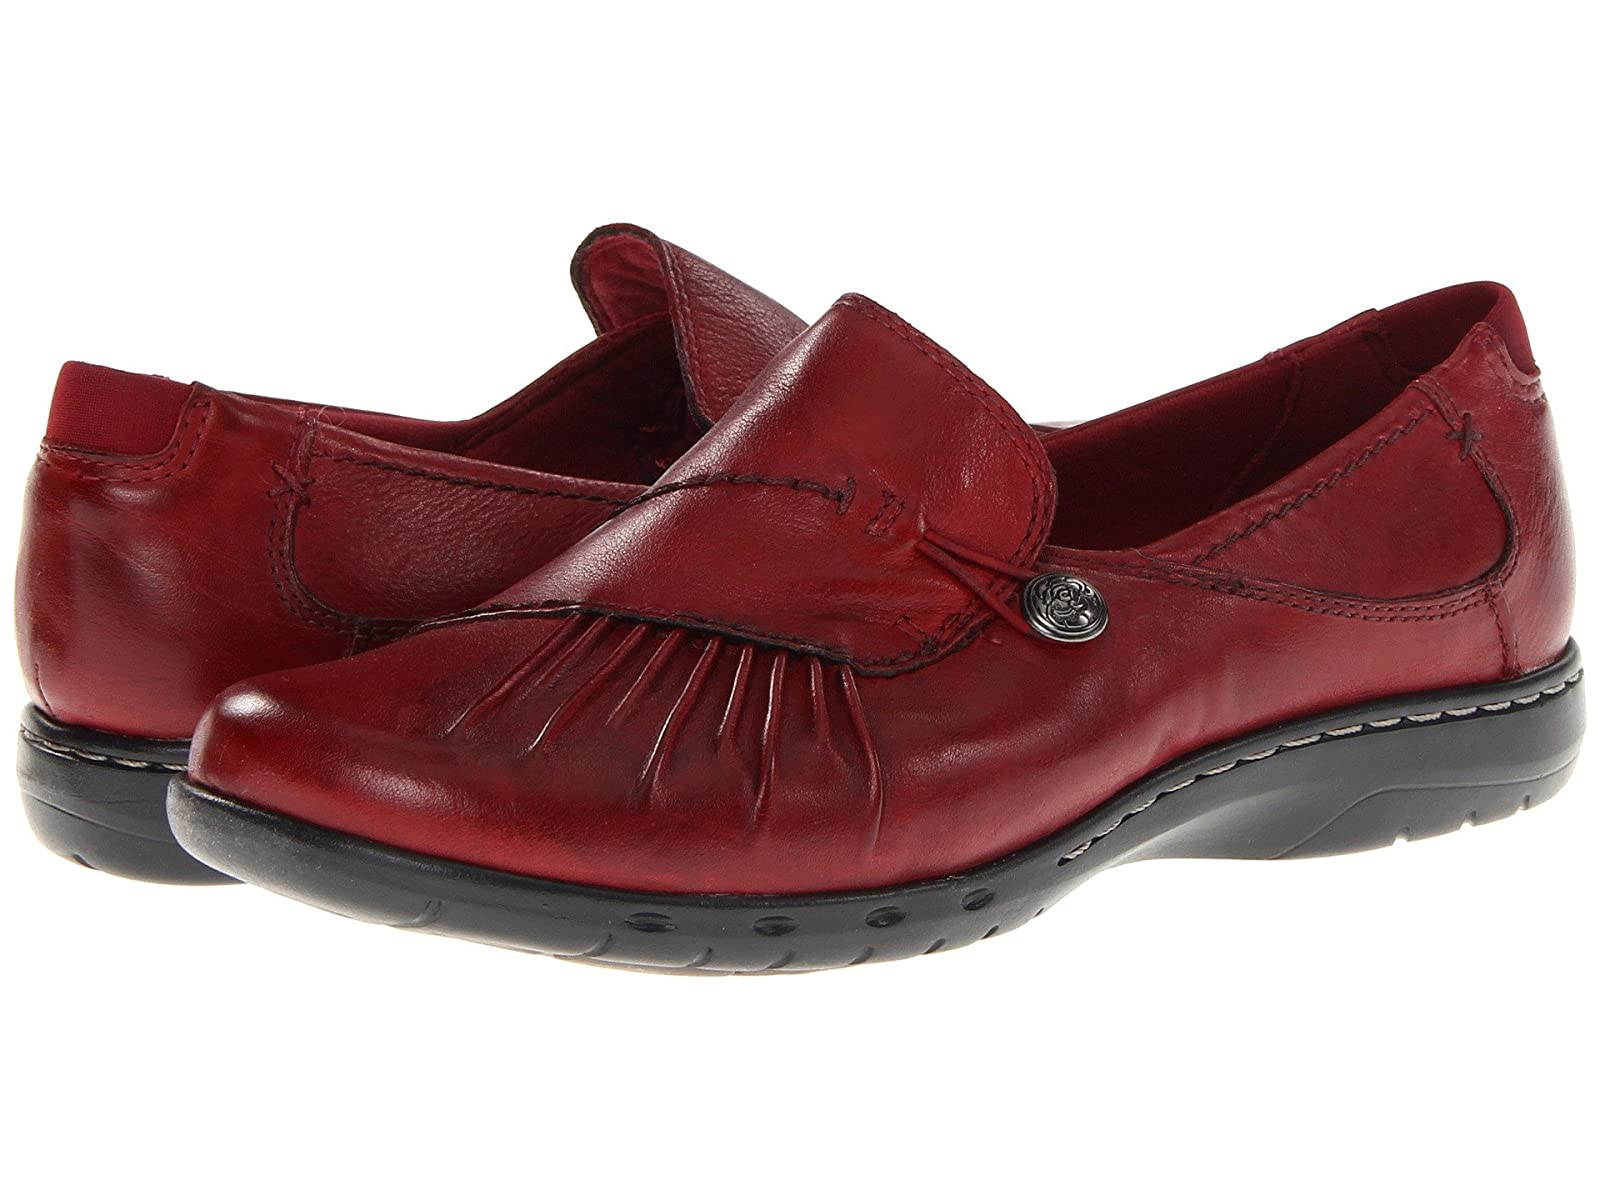 Rockport Cobb Hill Collection Cobb Hill PauletteAtmospheric grades have affordable shoes